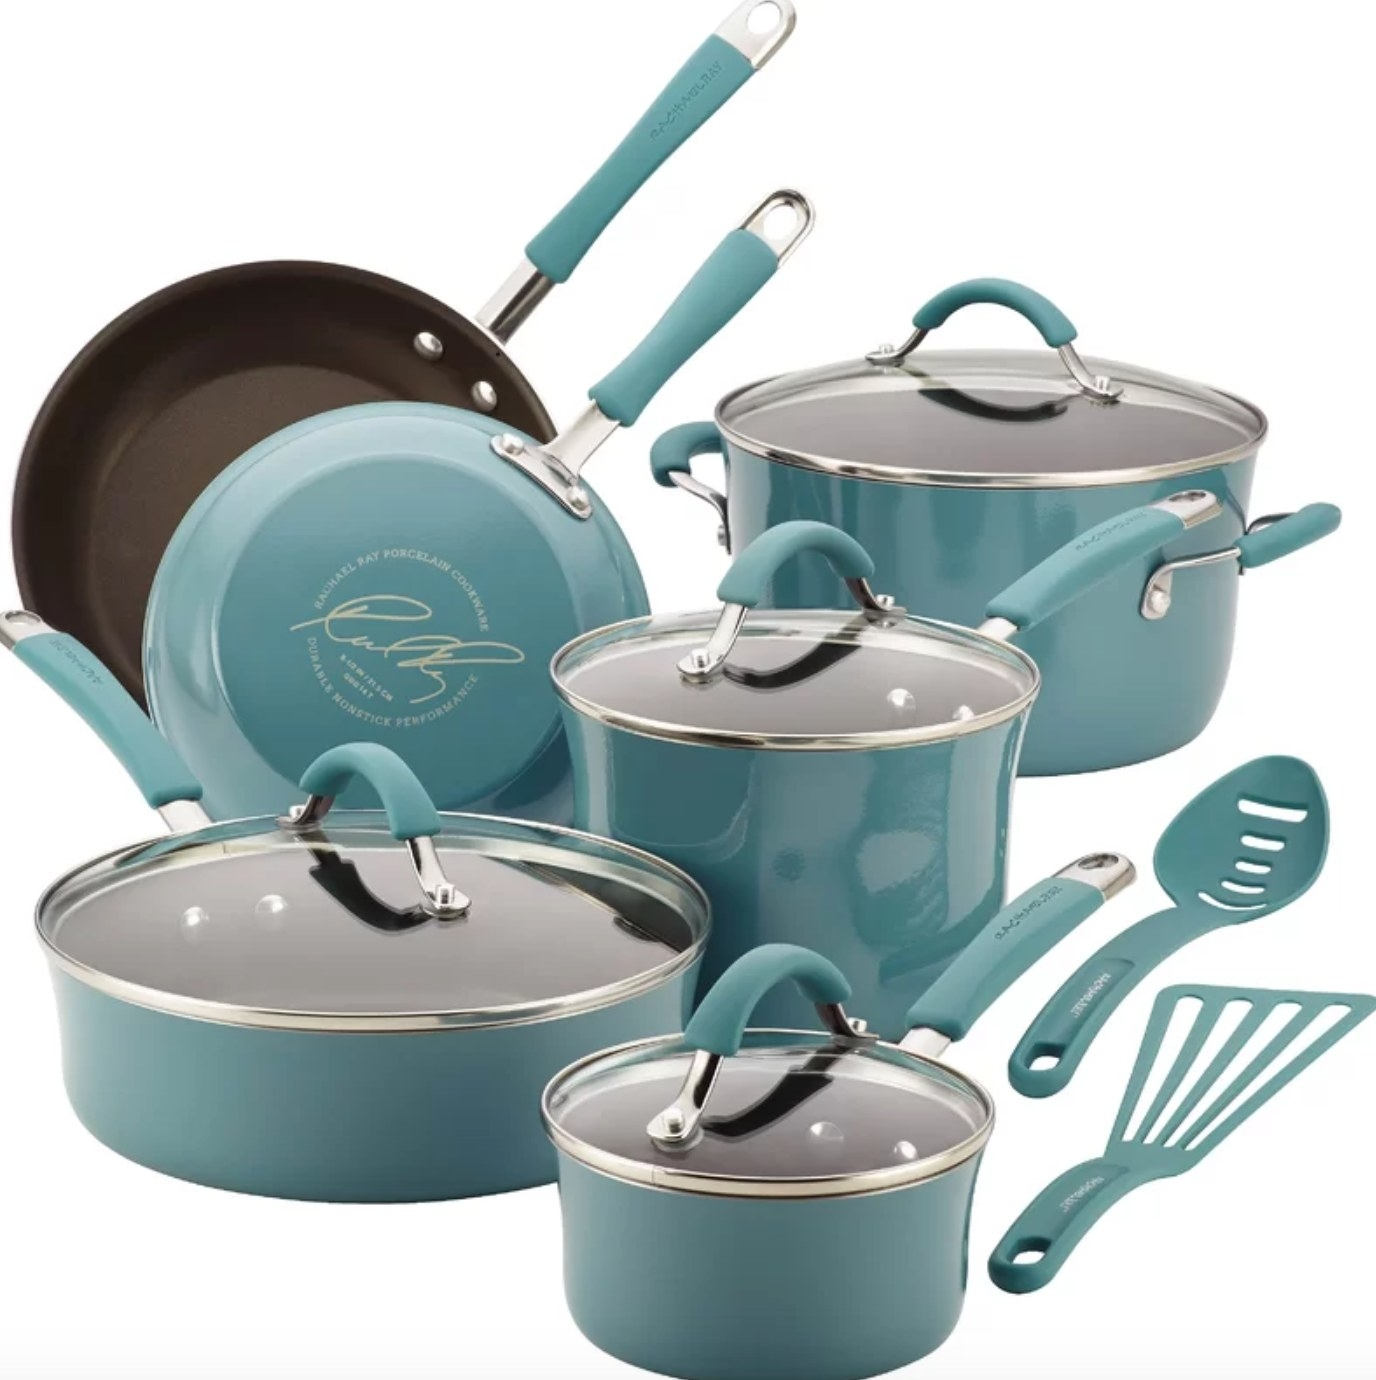 The 12 piece Rachael Ray cookware set in agave blue